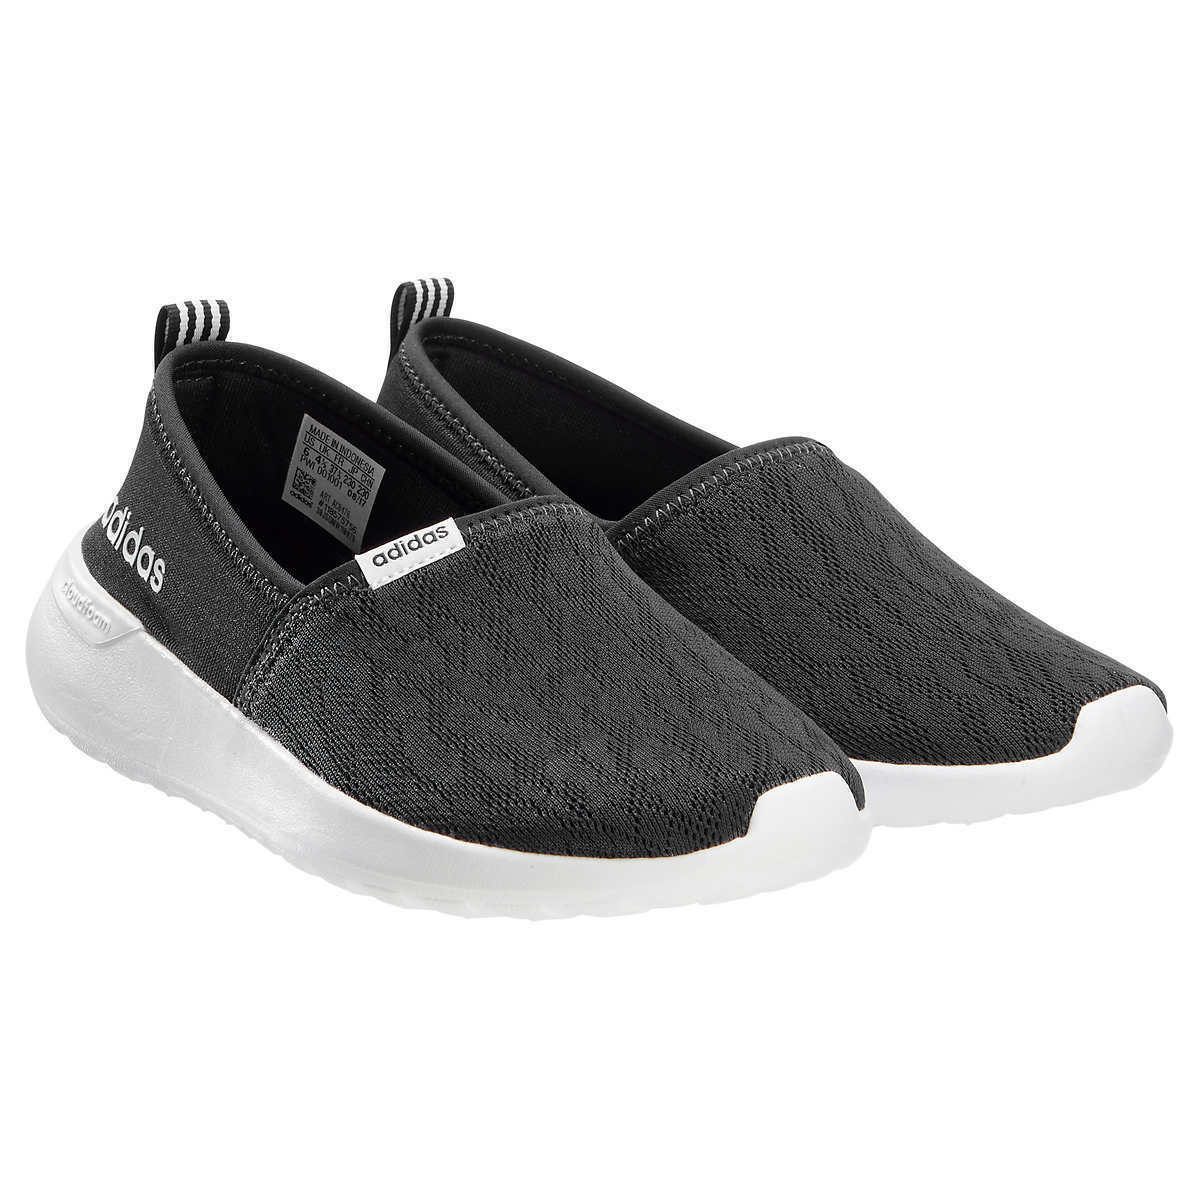 Adidas Women's Cloudfoam Lite Racer Slip On Shoe Store Return